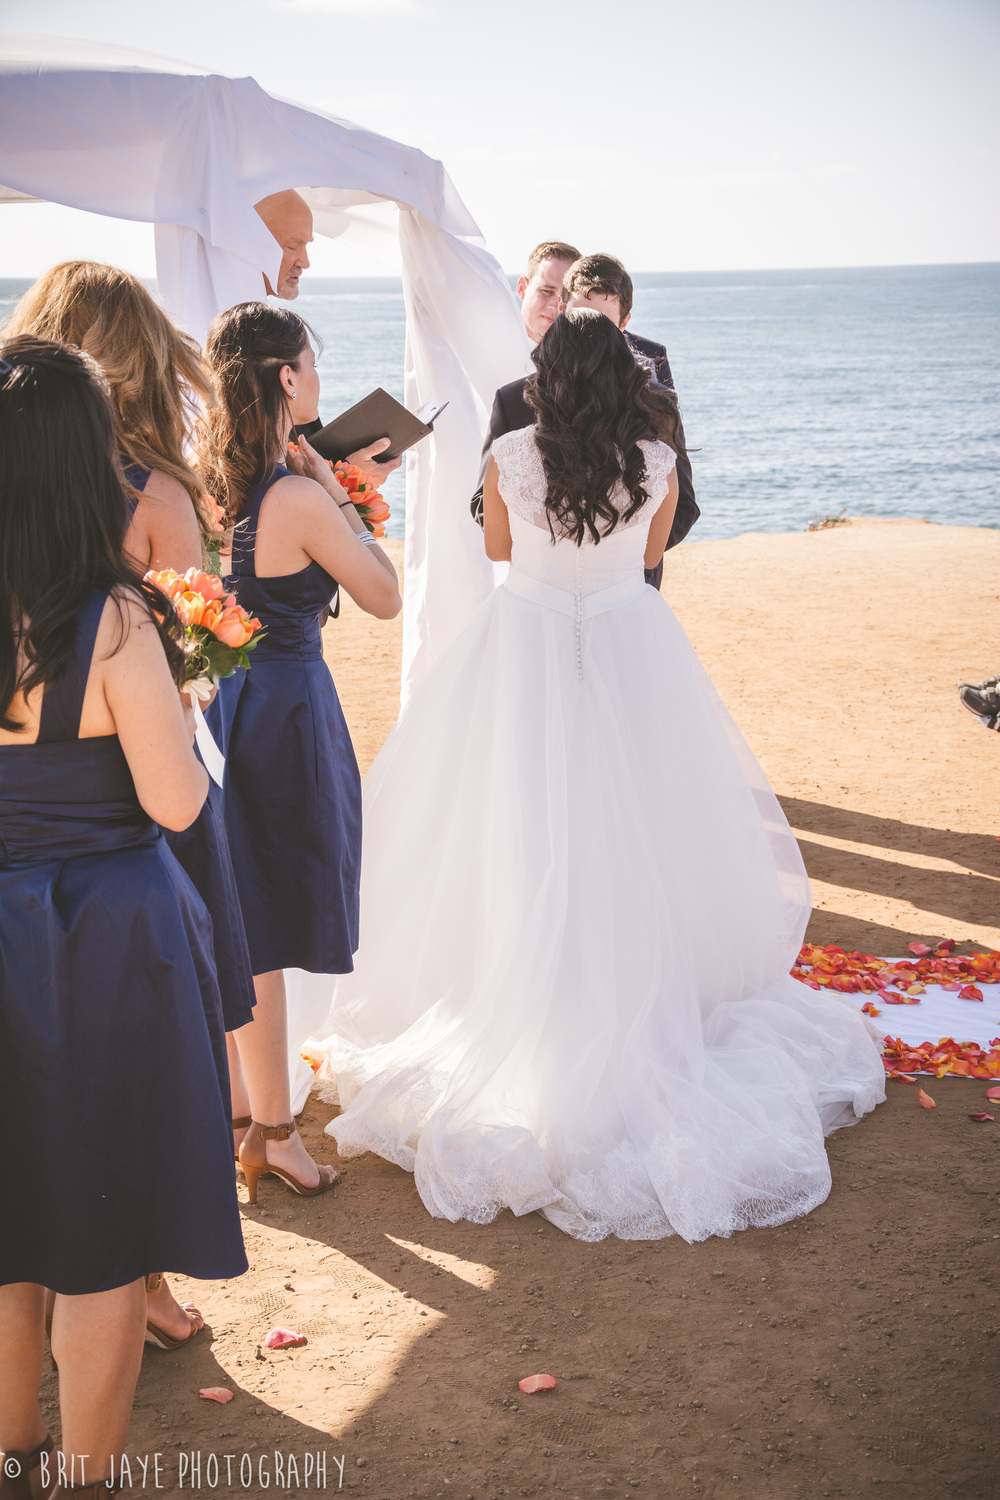 SunsetCliffsWeddingCeremony-1-3.jpg